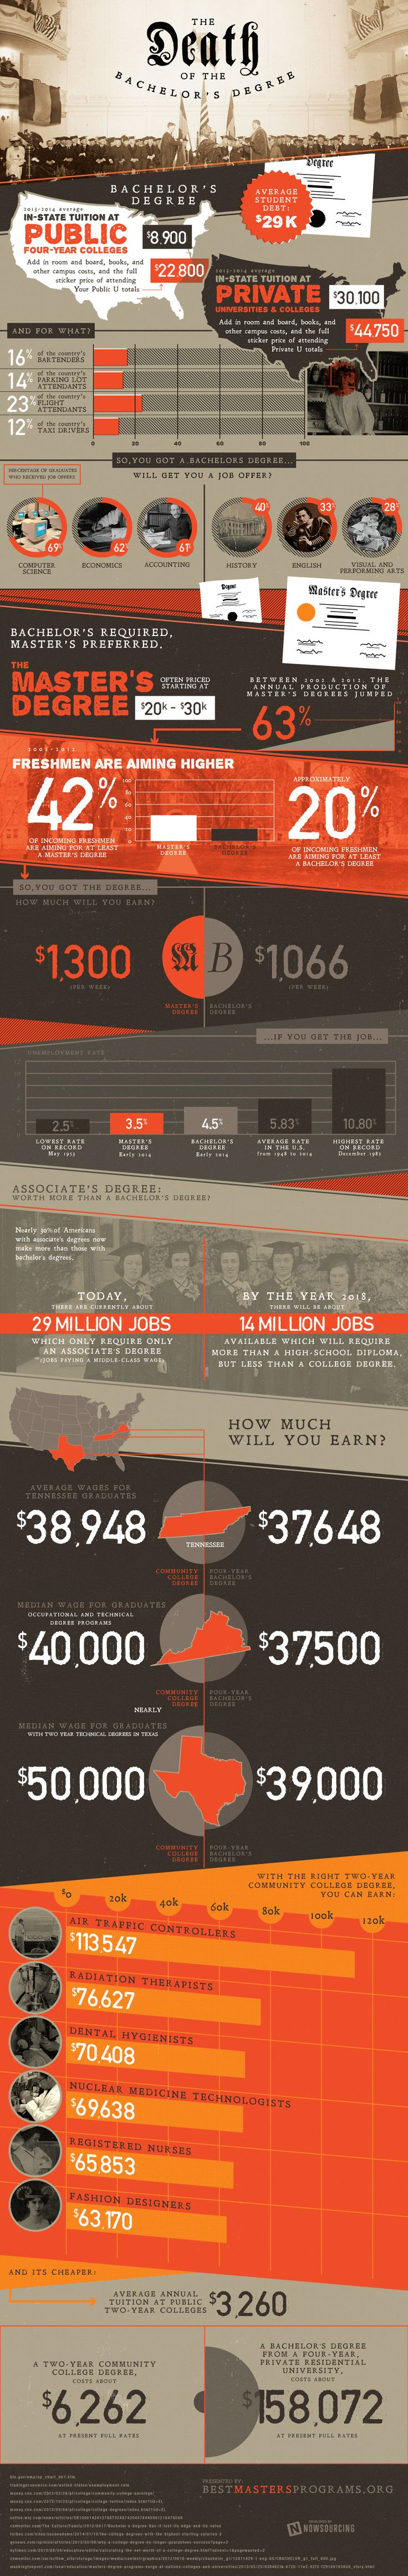 The Death of the Bachelor's Degree   #Infographic #Bachelor #Education